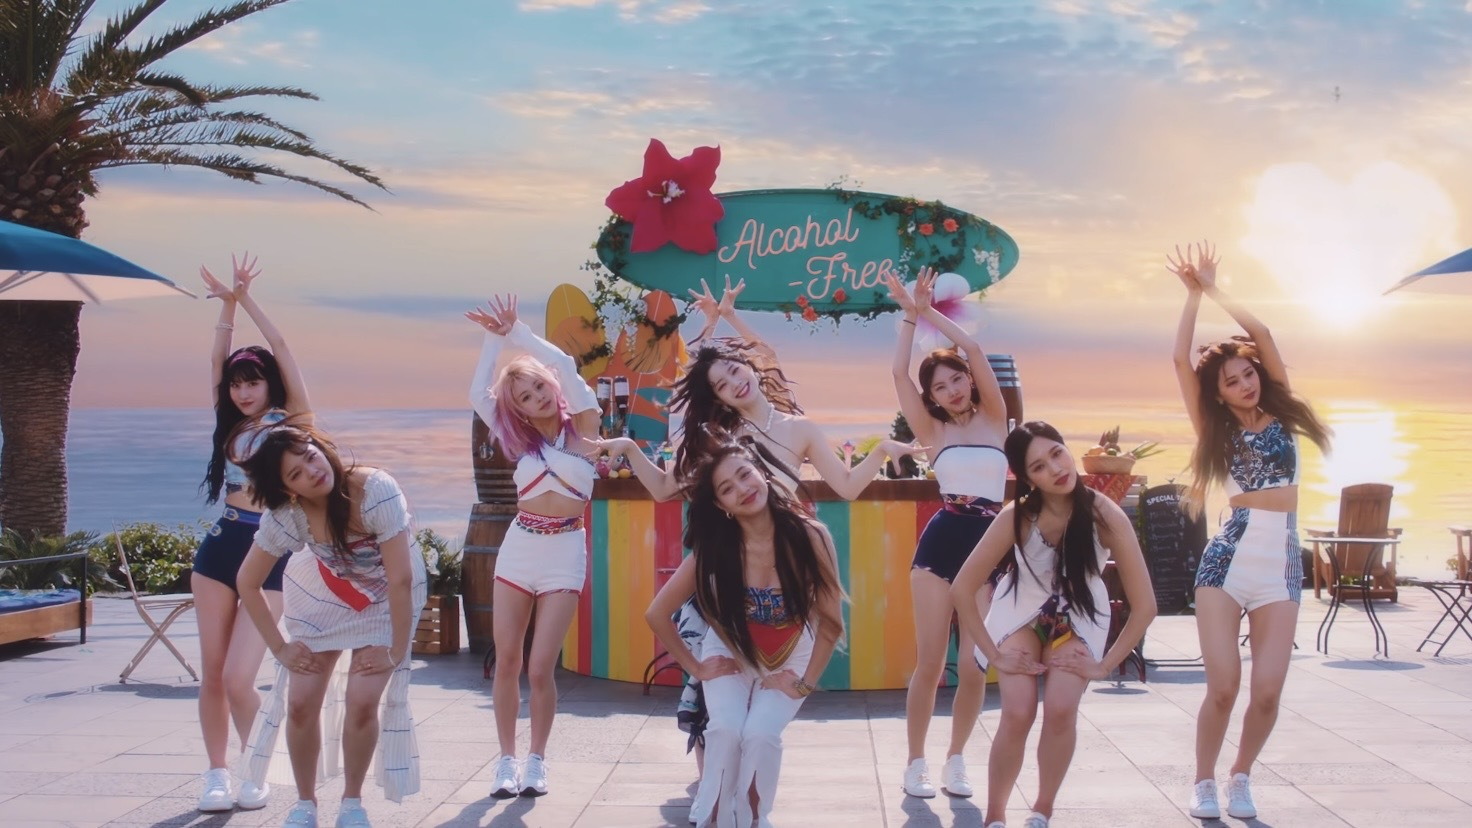 TWICE unveils new song 'Alcohol-Free' performance for the first time at 'TheEllenShow' in the US